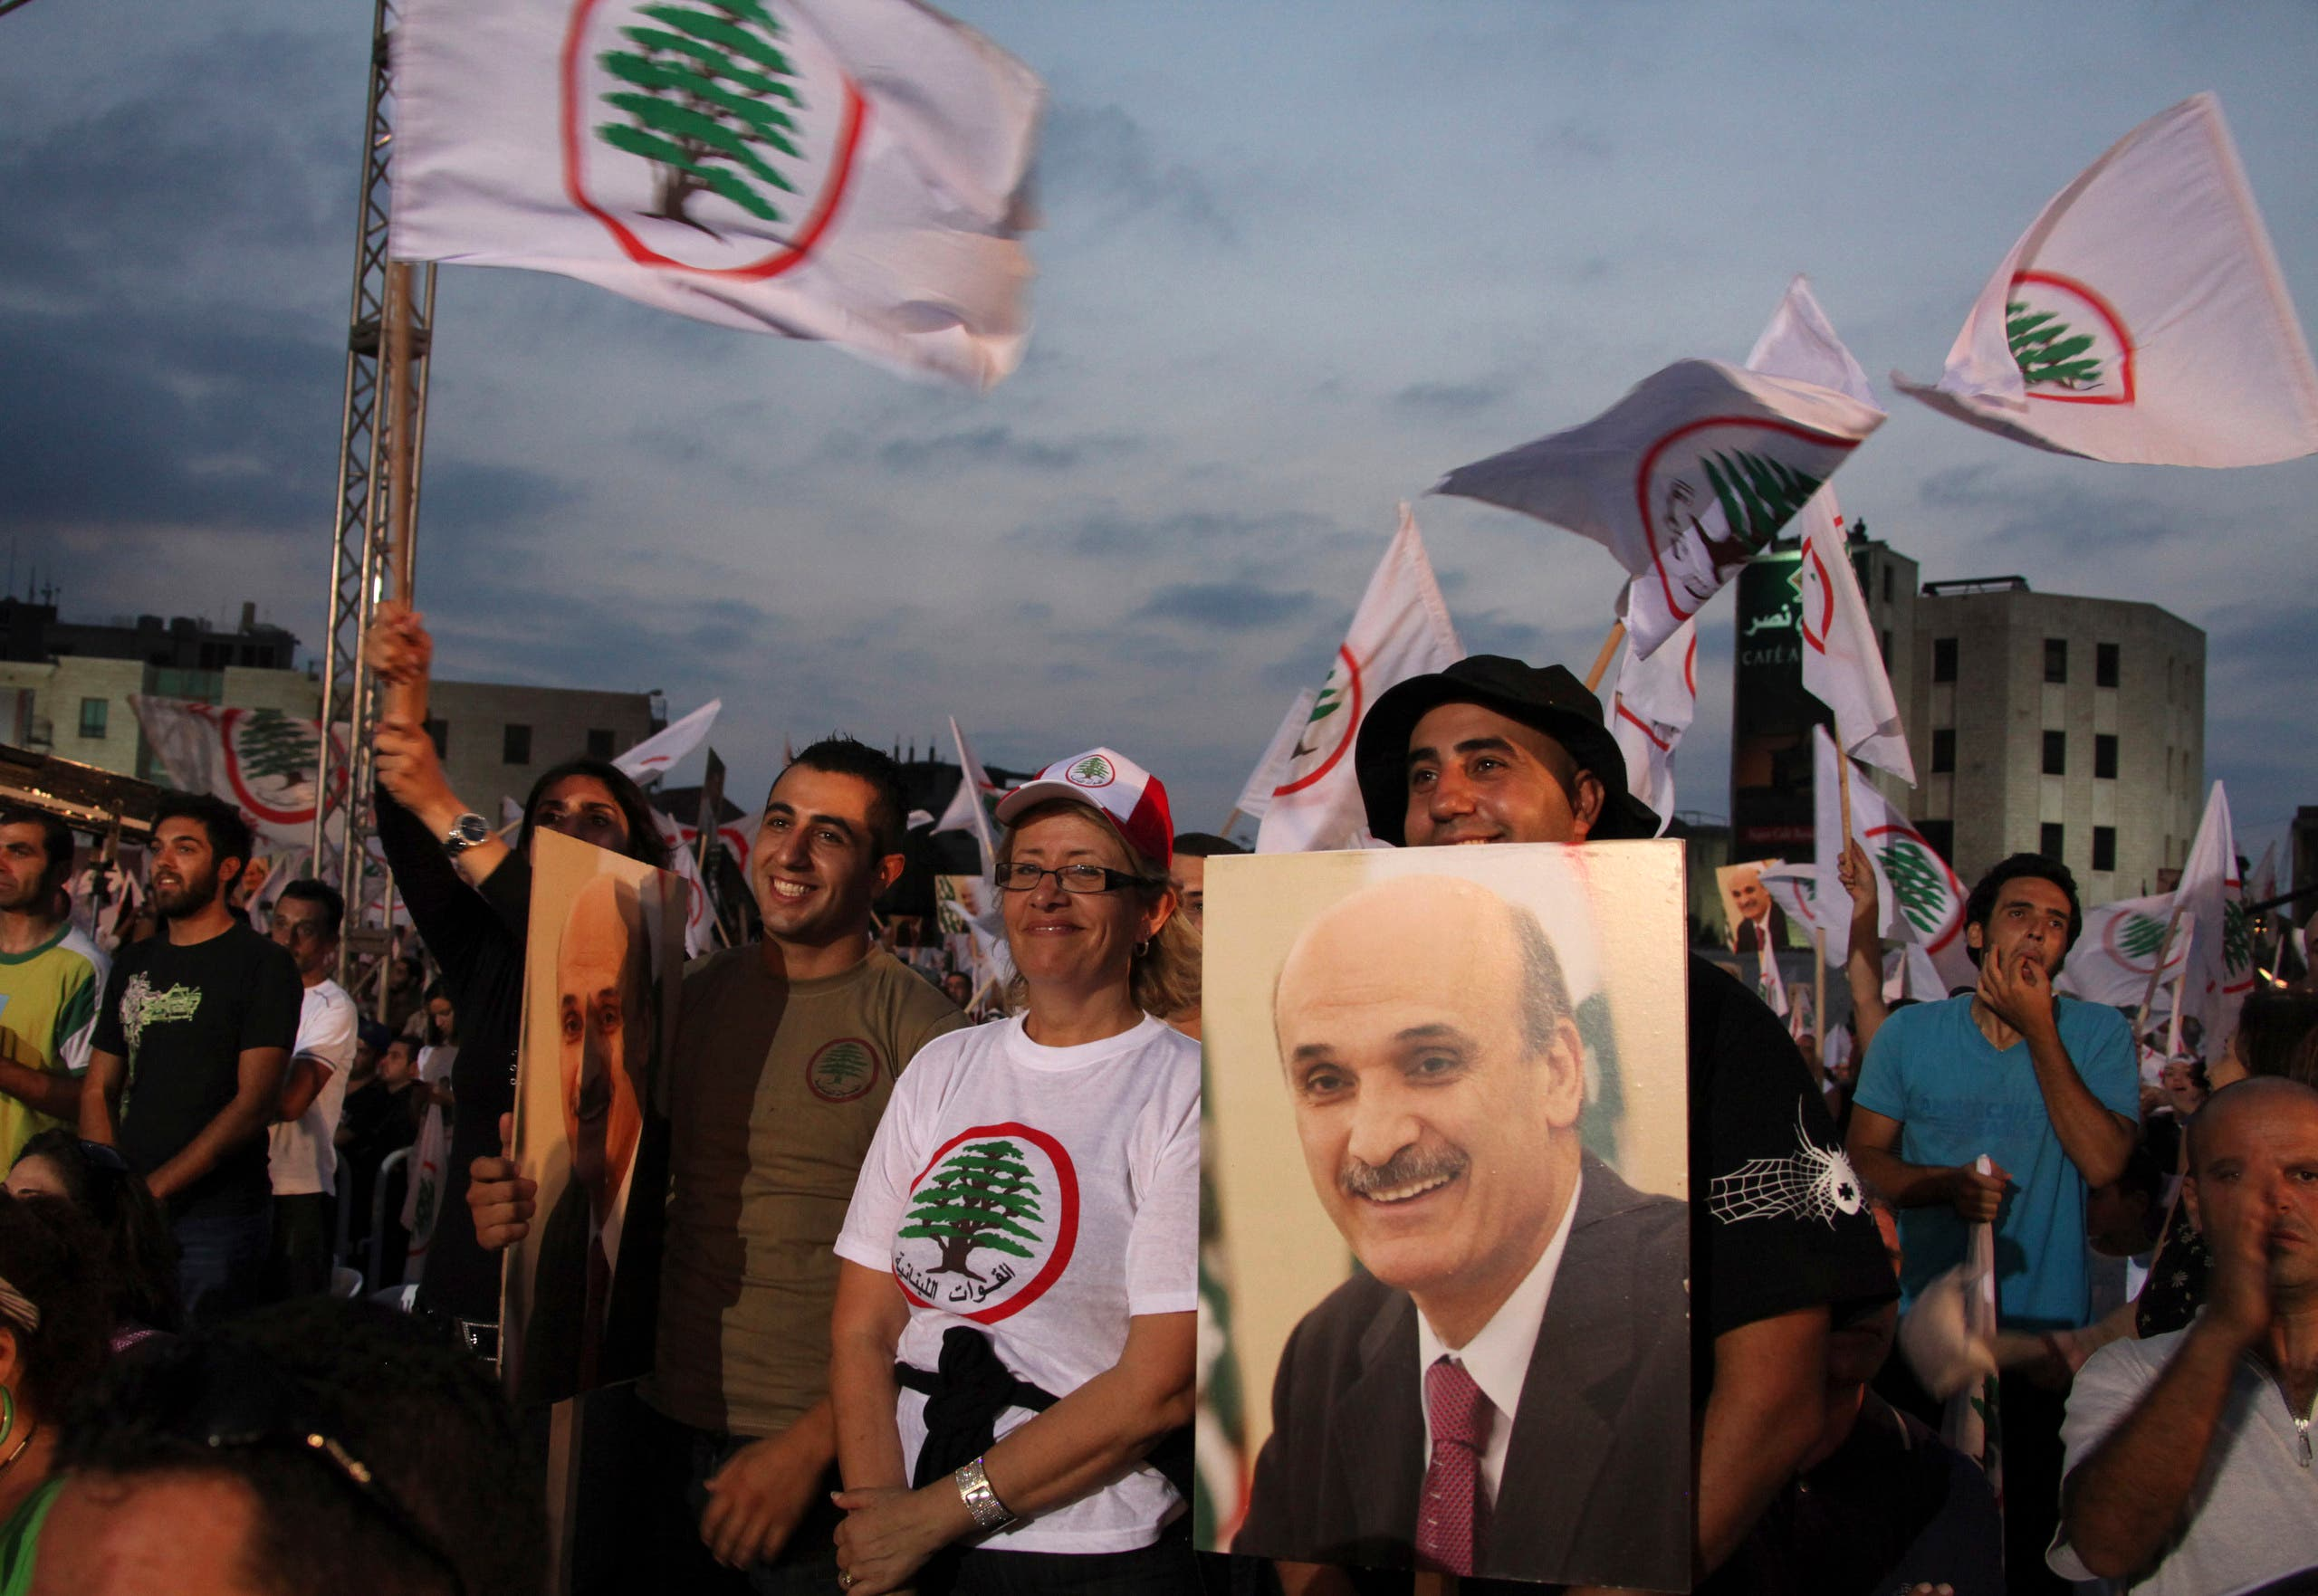 Supporters of Lebanon's leader of the Christian Lebanese Forces Samir Geagea, carry his picture and wave flags during a rally held for the commemoration of the LF's Lebanese Resistance Martyrs in Jouniyeh, north of Beirut, September 25, 2010. (Reuters)